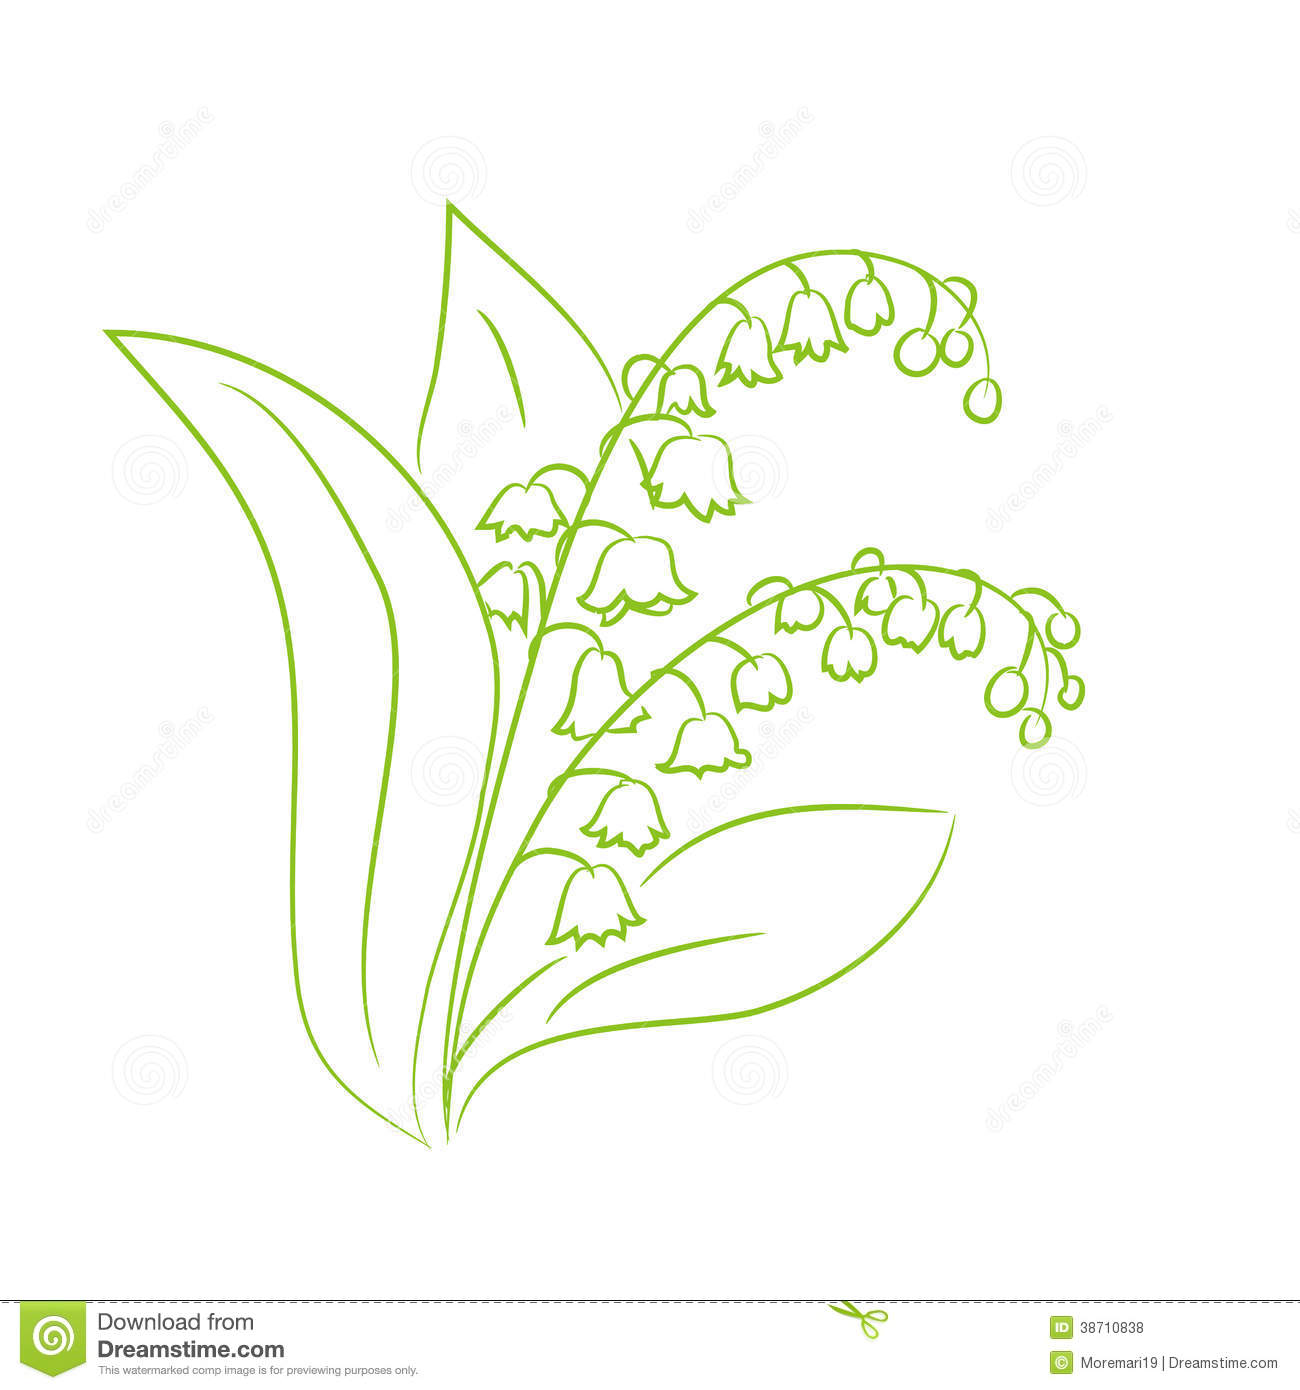 Sketch of a flower lily of the valley stock vector illustration of sketch of a flower lily of the valley izmirmasajfo